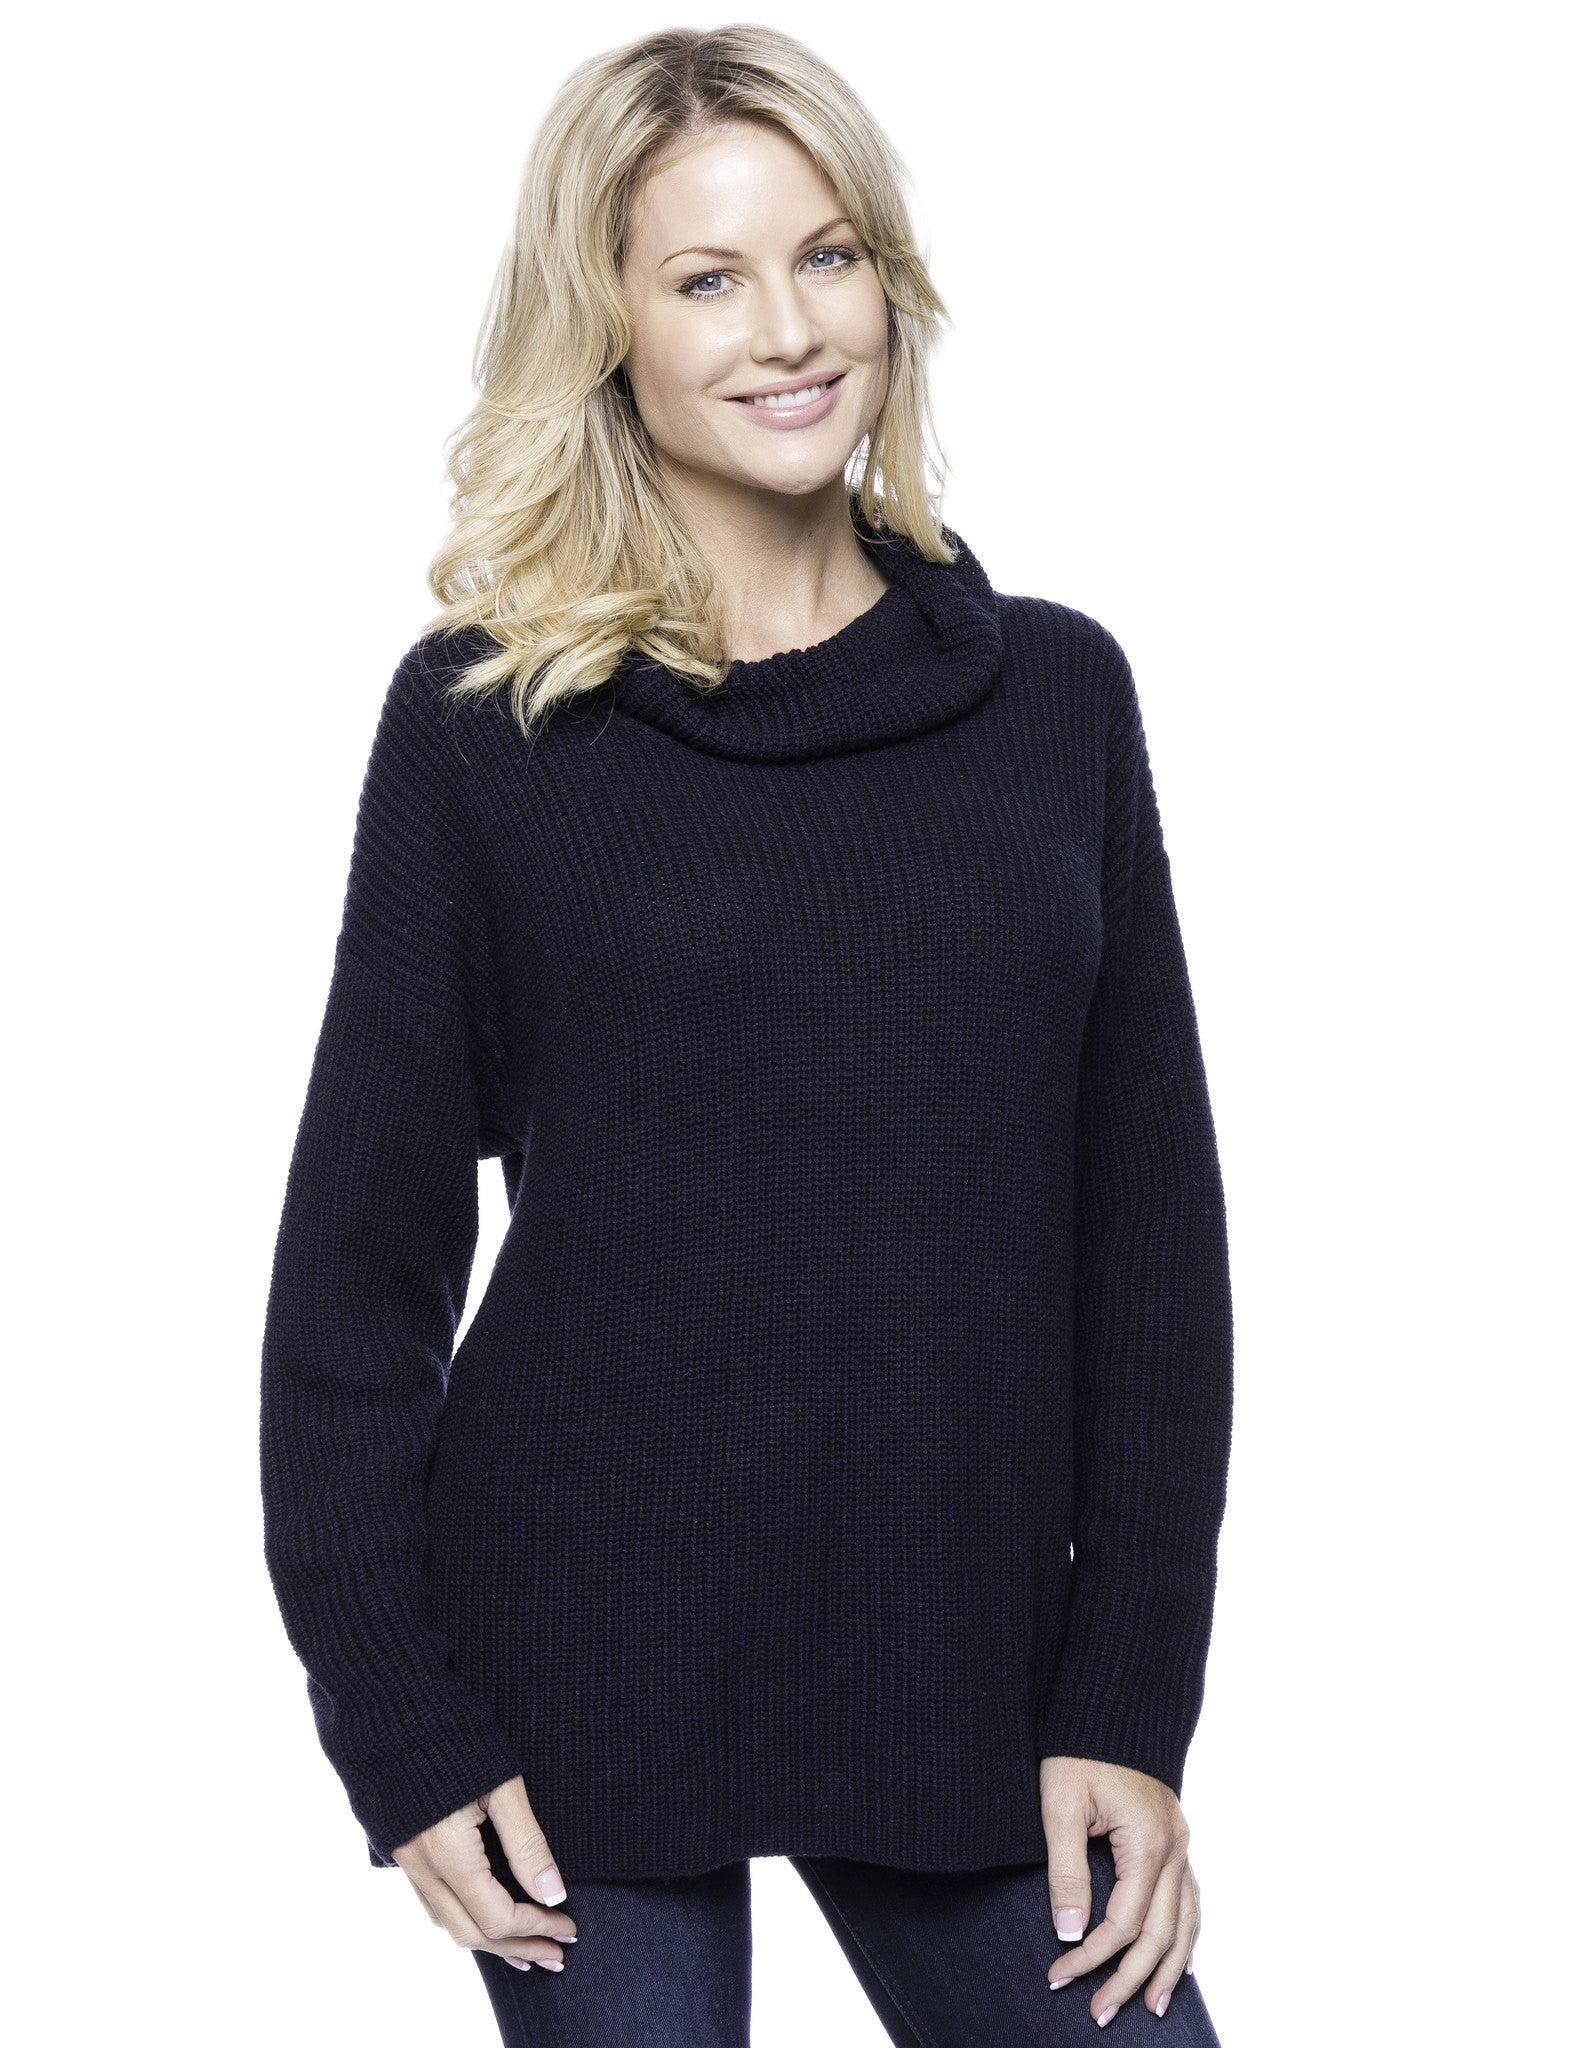 Cashmere Blend Cowl Neck Sweater - Navy